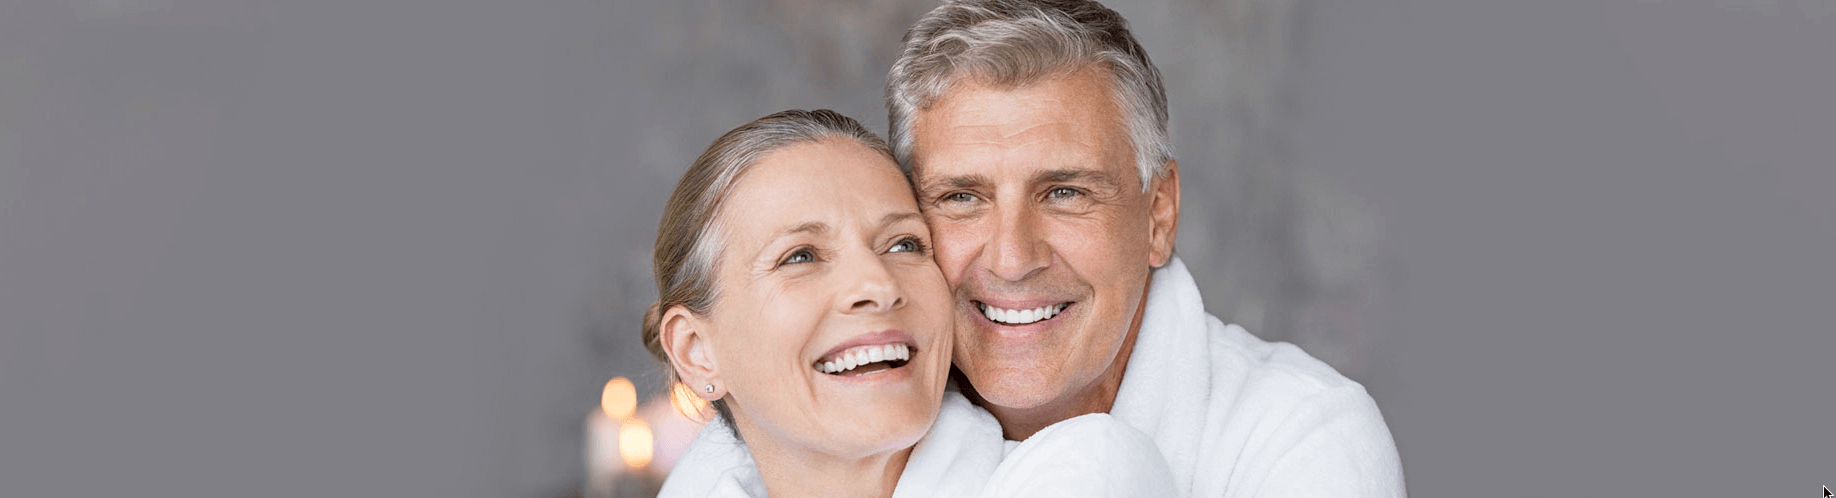 Oral Cancer Screenings in Ellicott City, MD